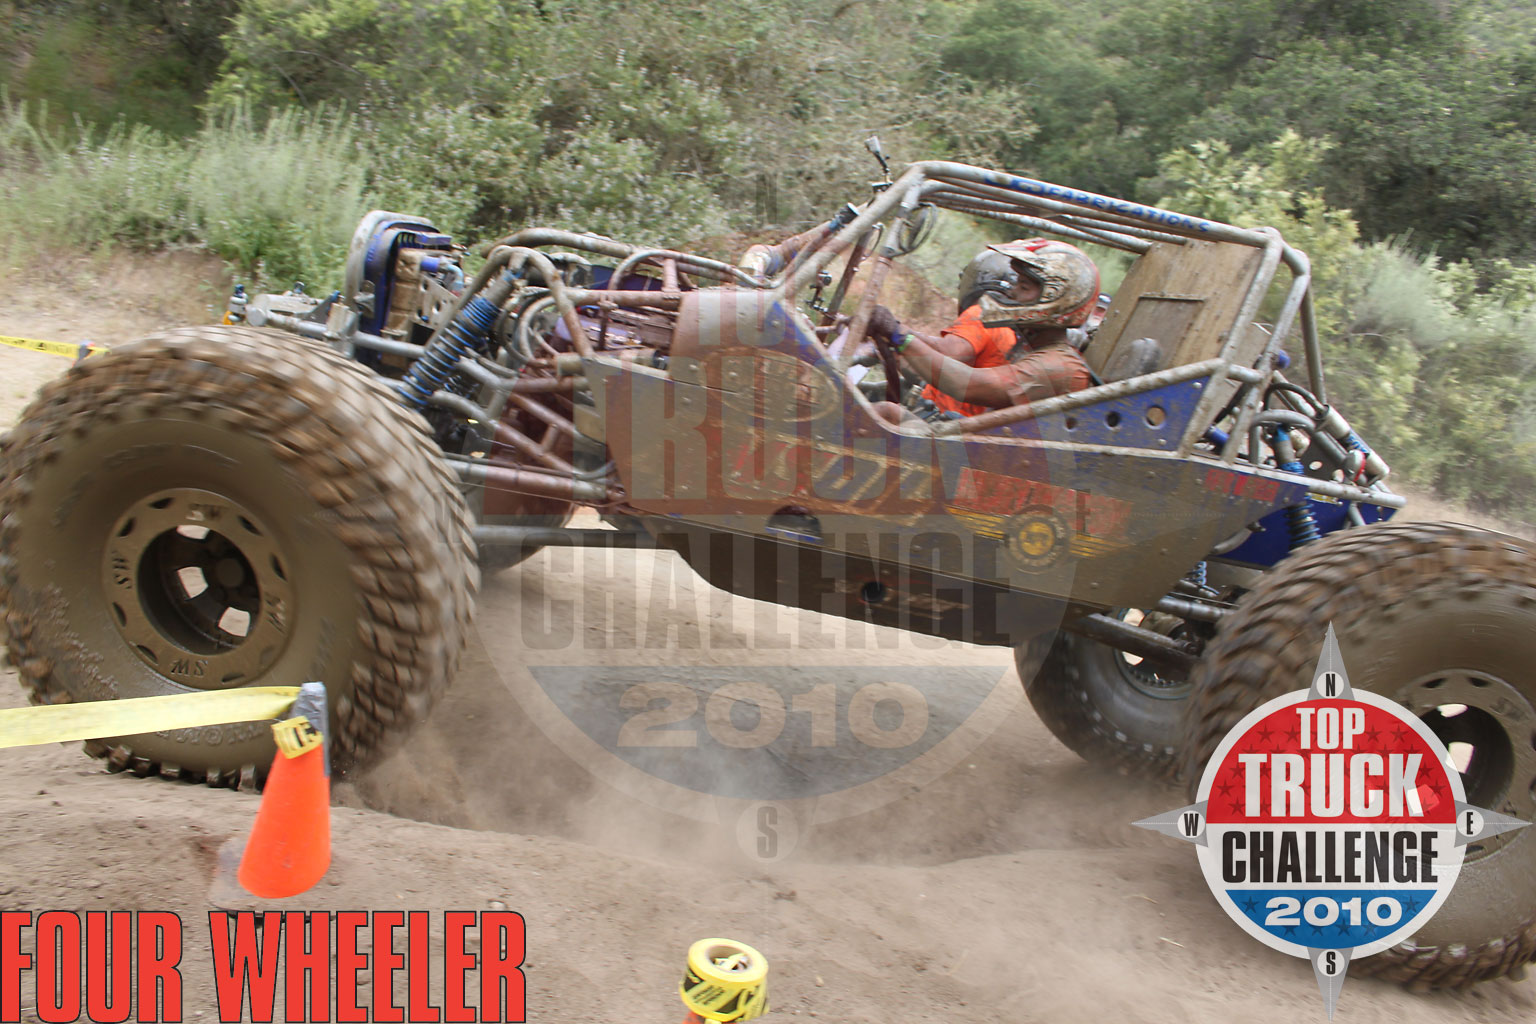 2010 Top Truck Challenge Obstacle Course Joe Quichocho Tube Chassis Cj7 Buggy